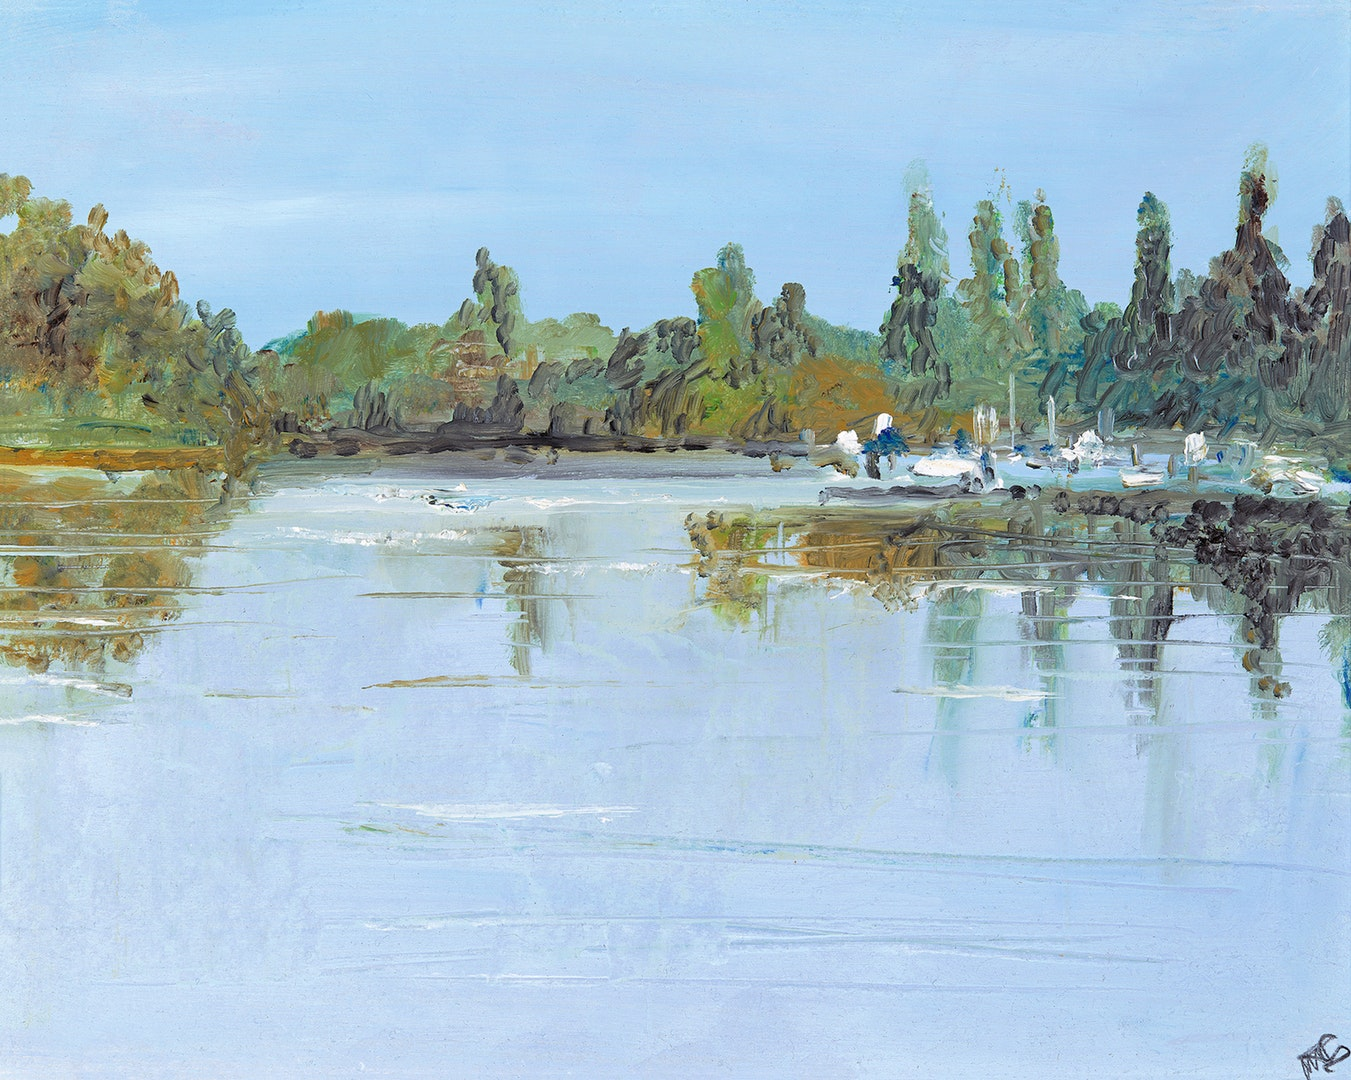 'On The Charente', Maureen Gillespie, Oil, 40 x 30 cm